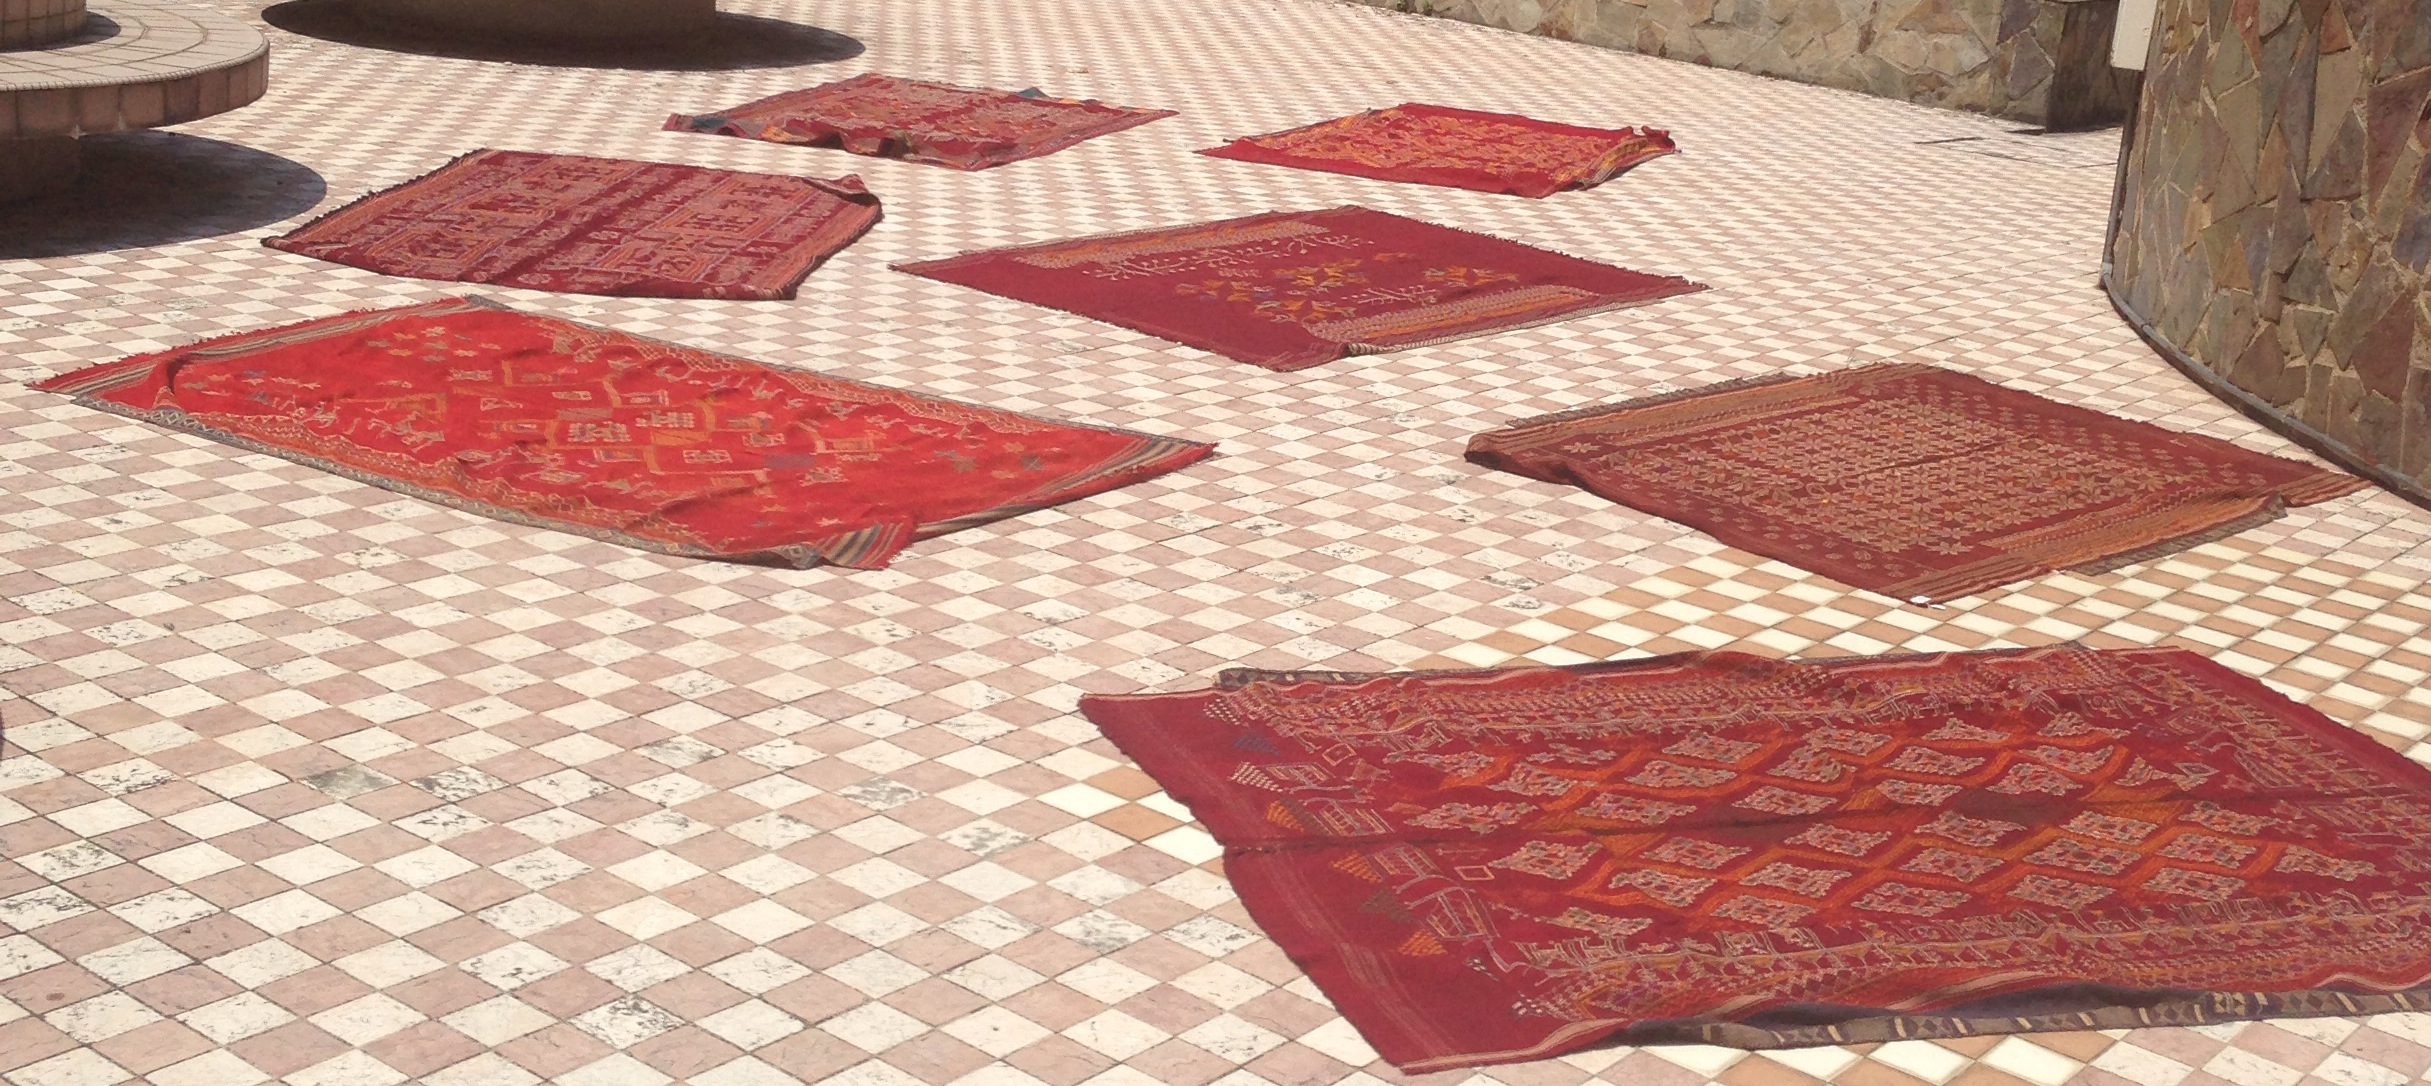 antique wool textiles getting sun wash